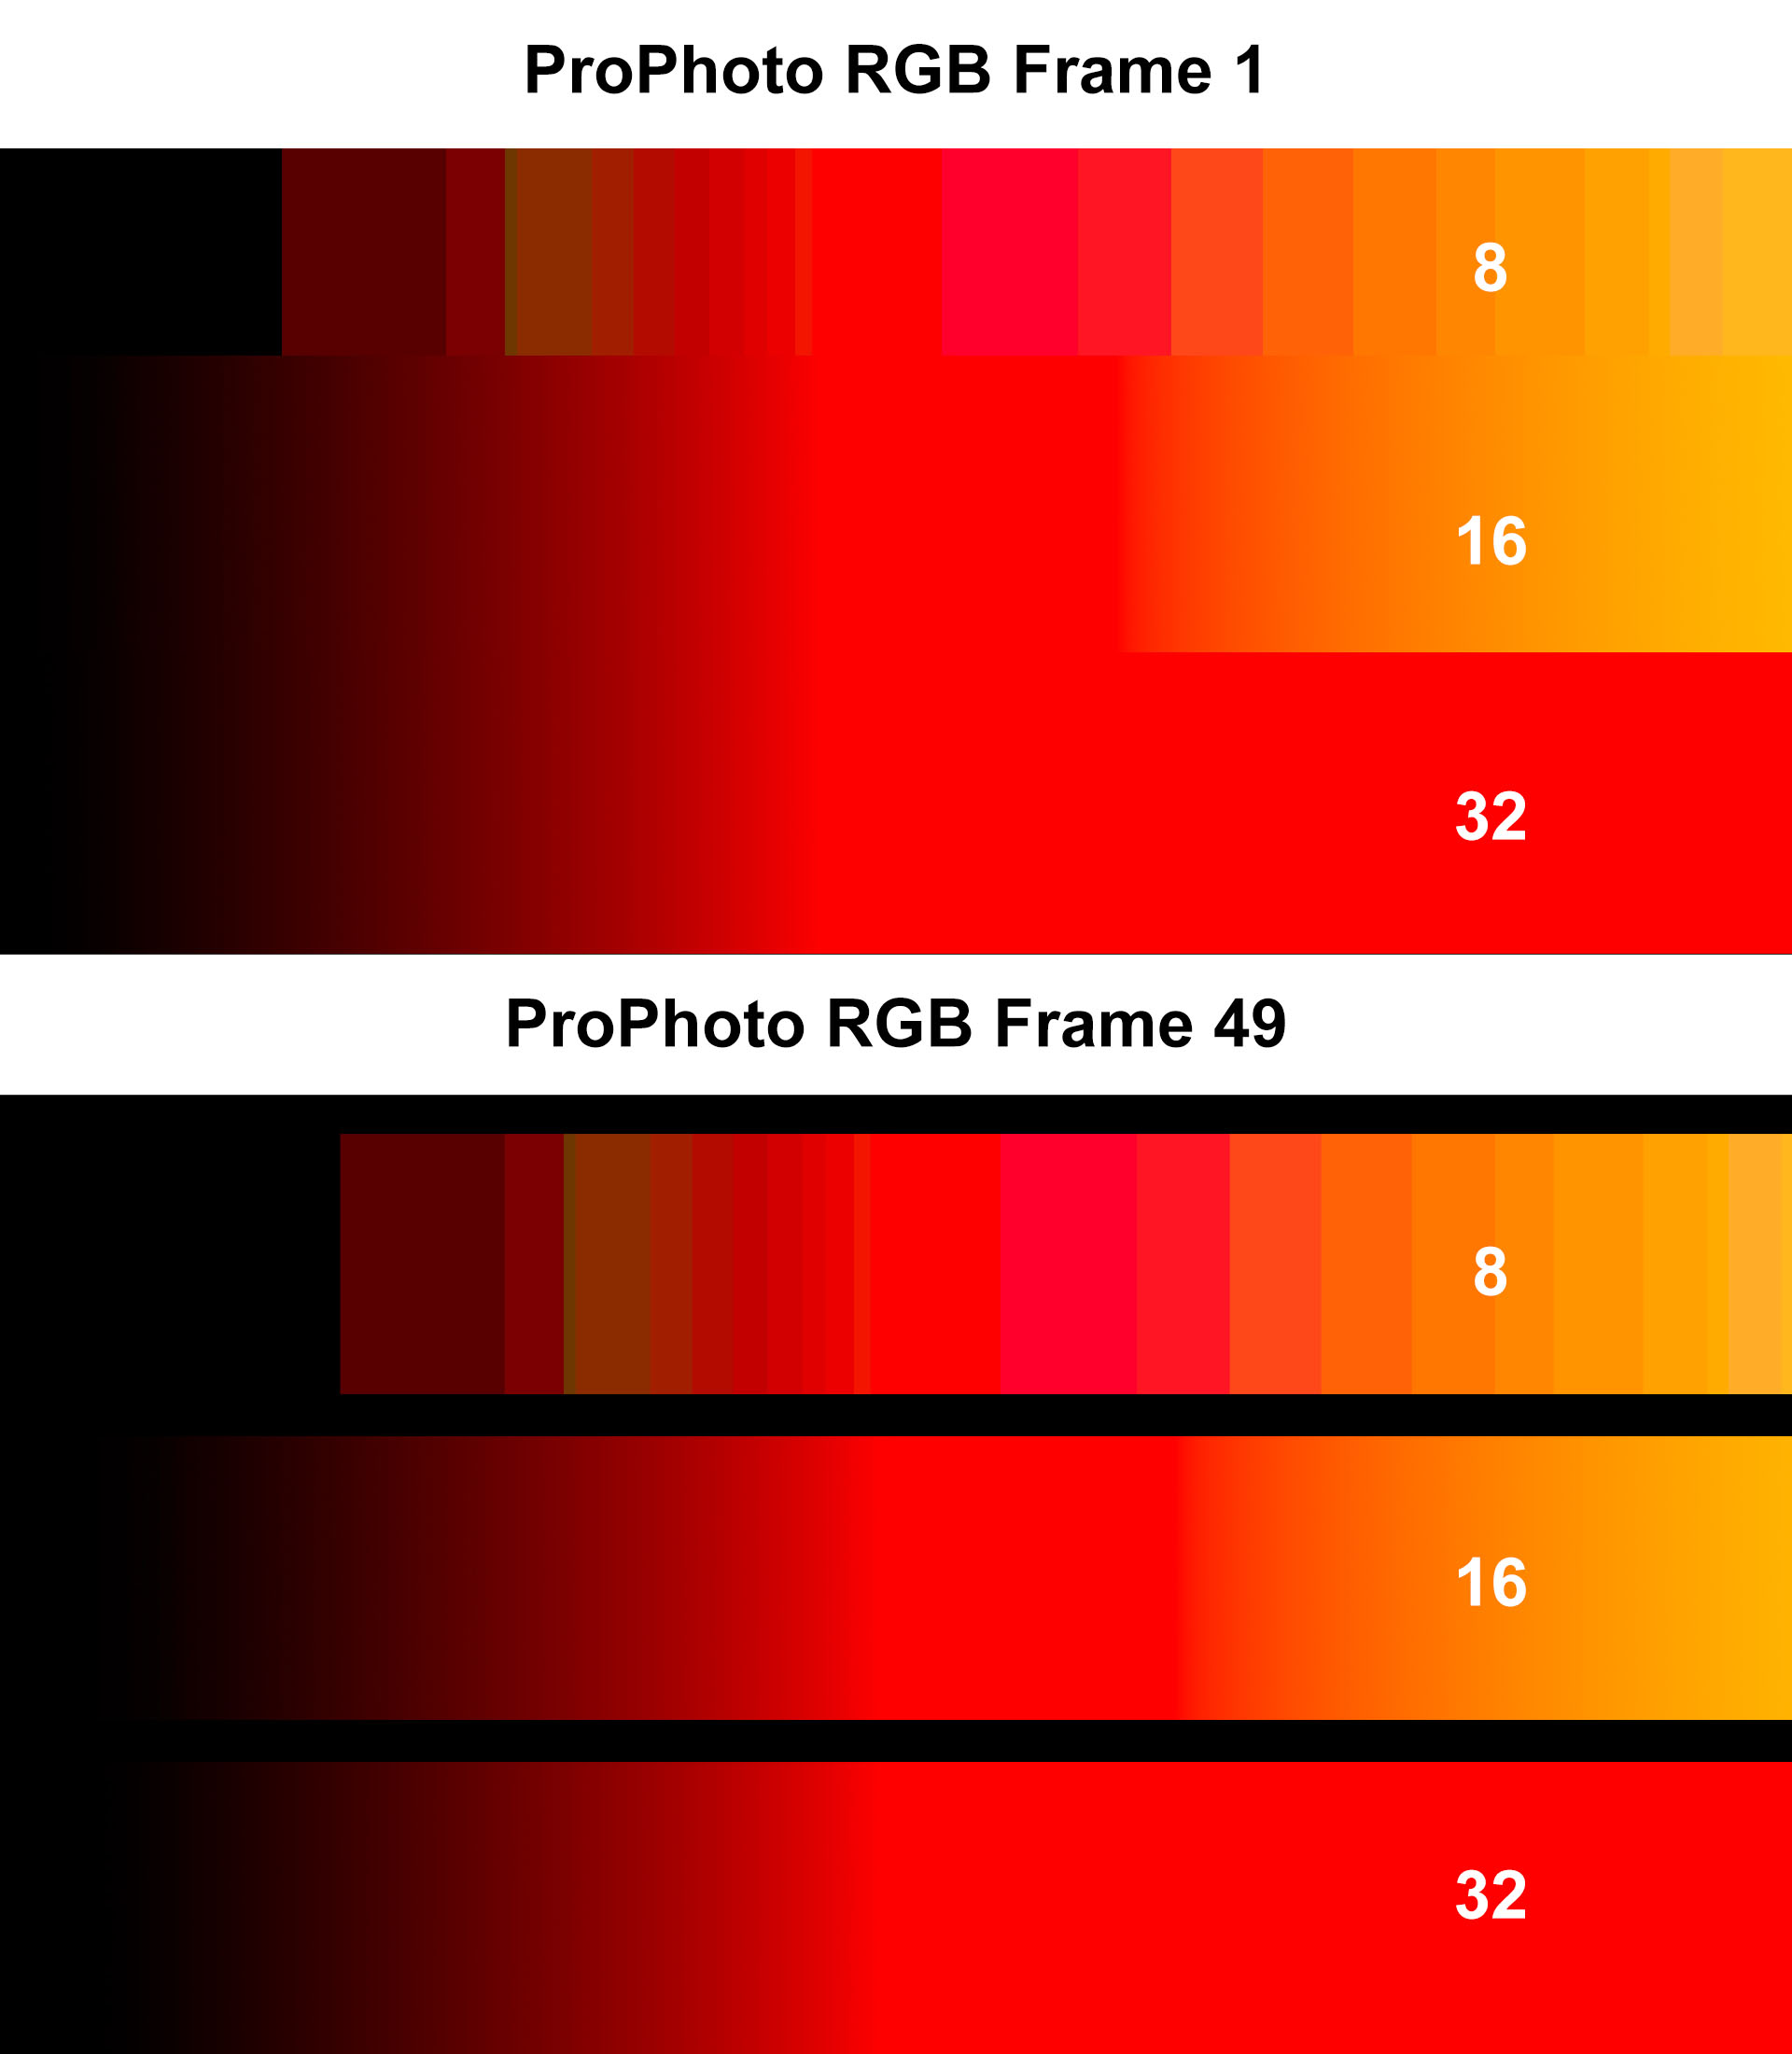 PP RGB Comparison